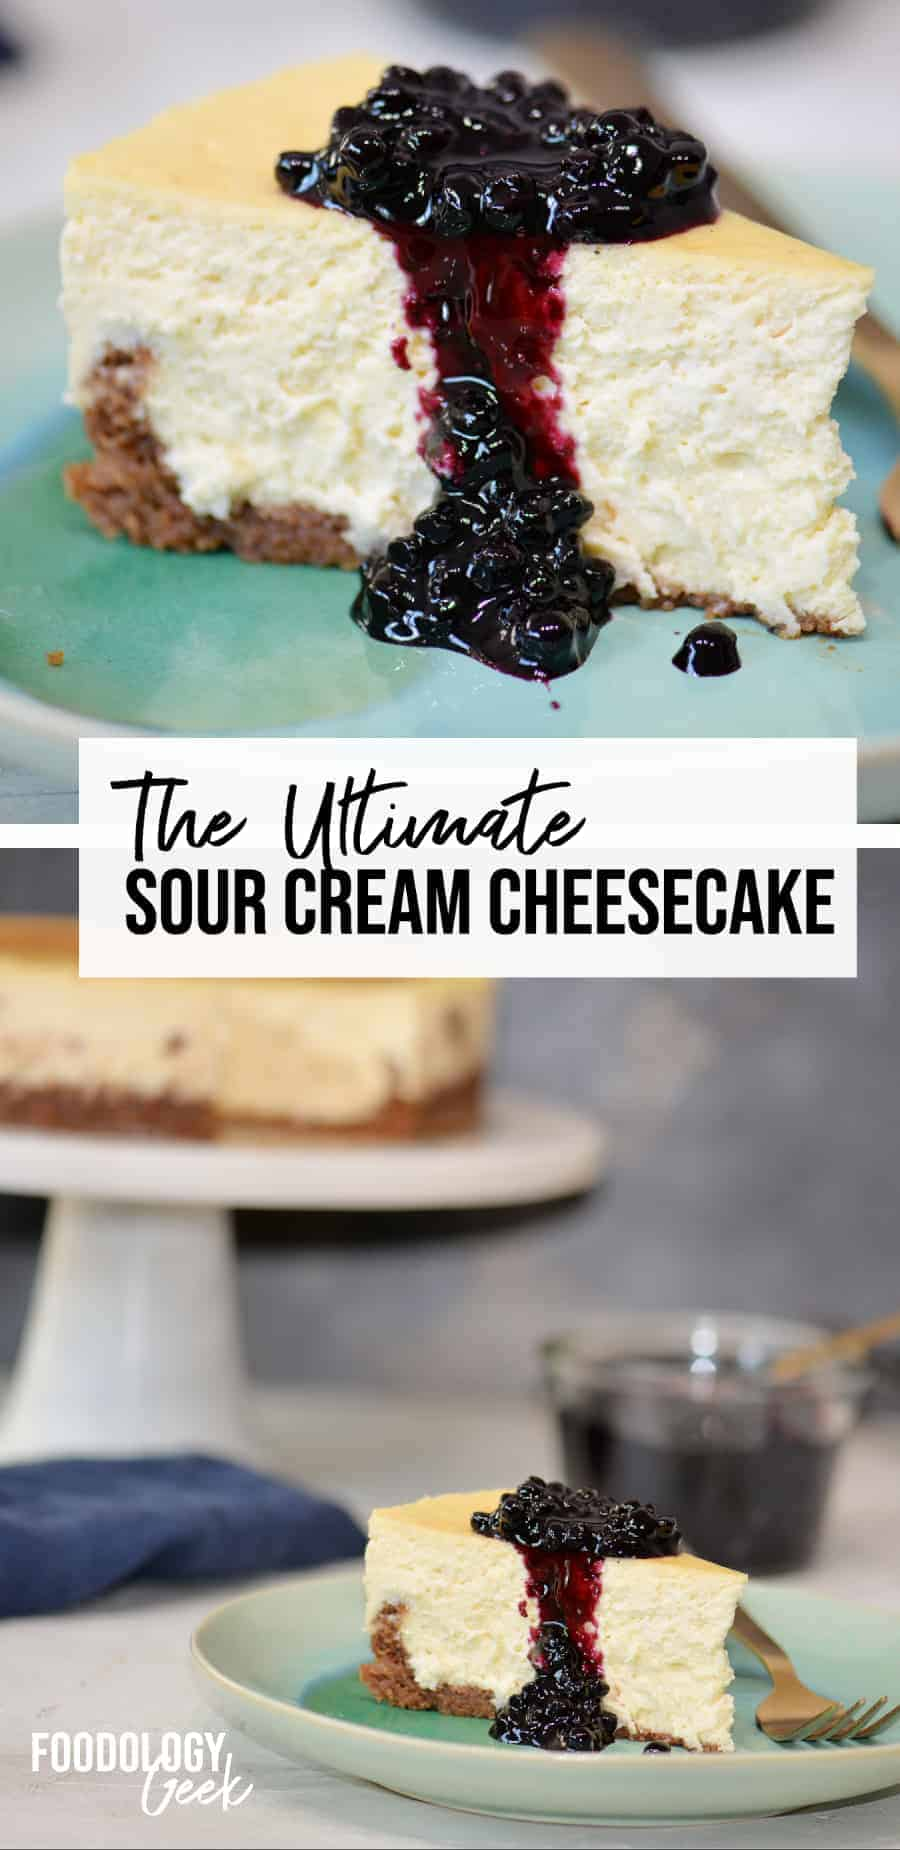 sour cream cheesecake with blueberry topping pinterest image